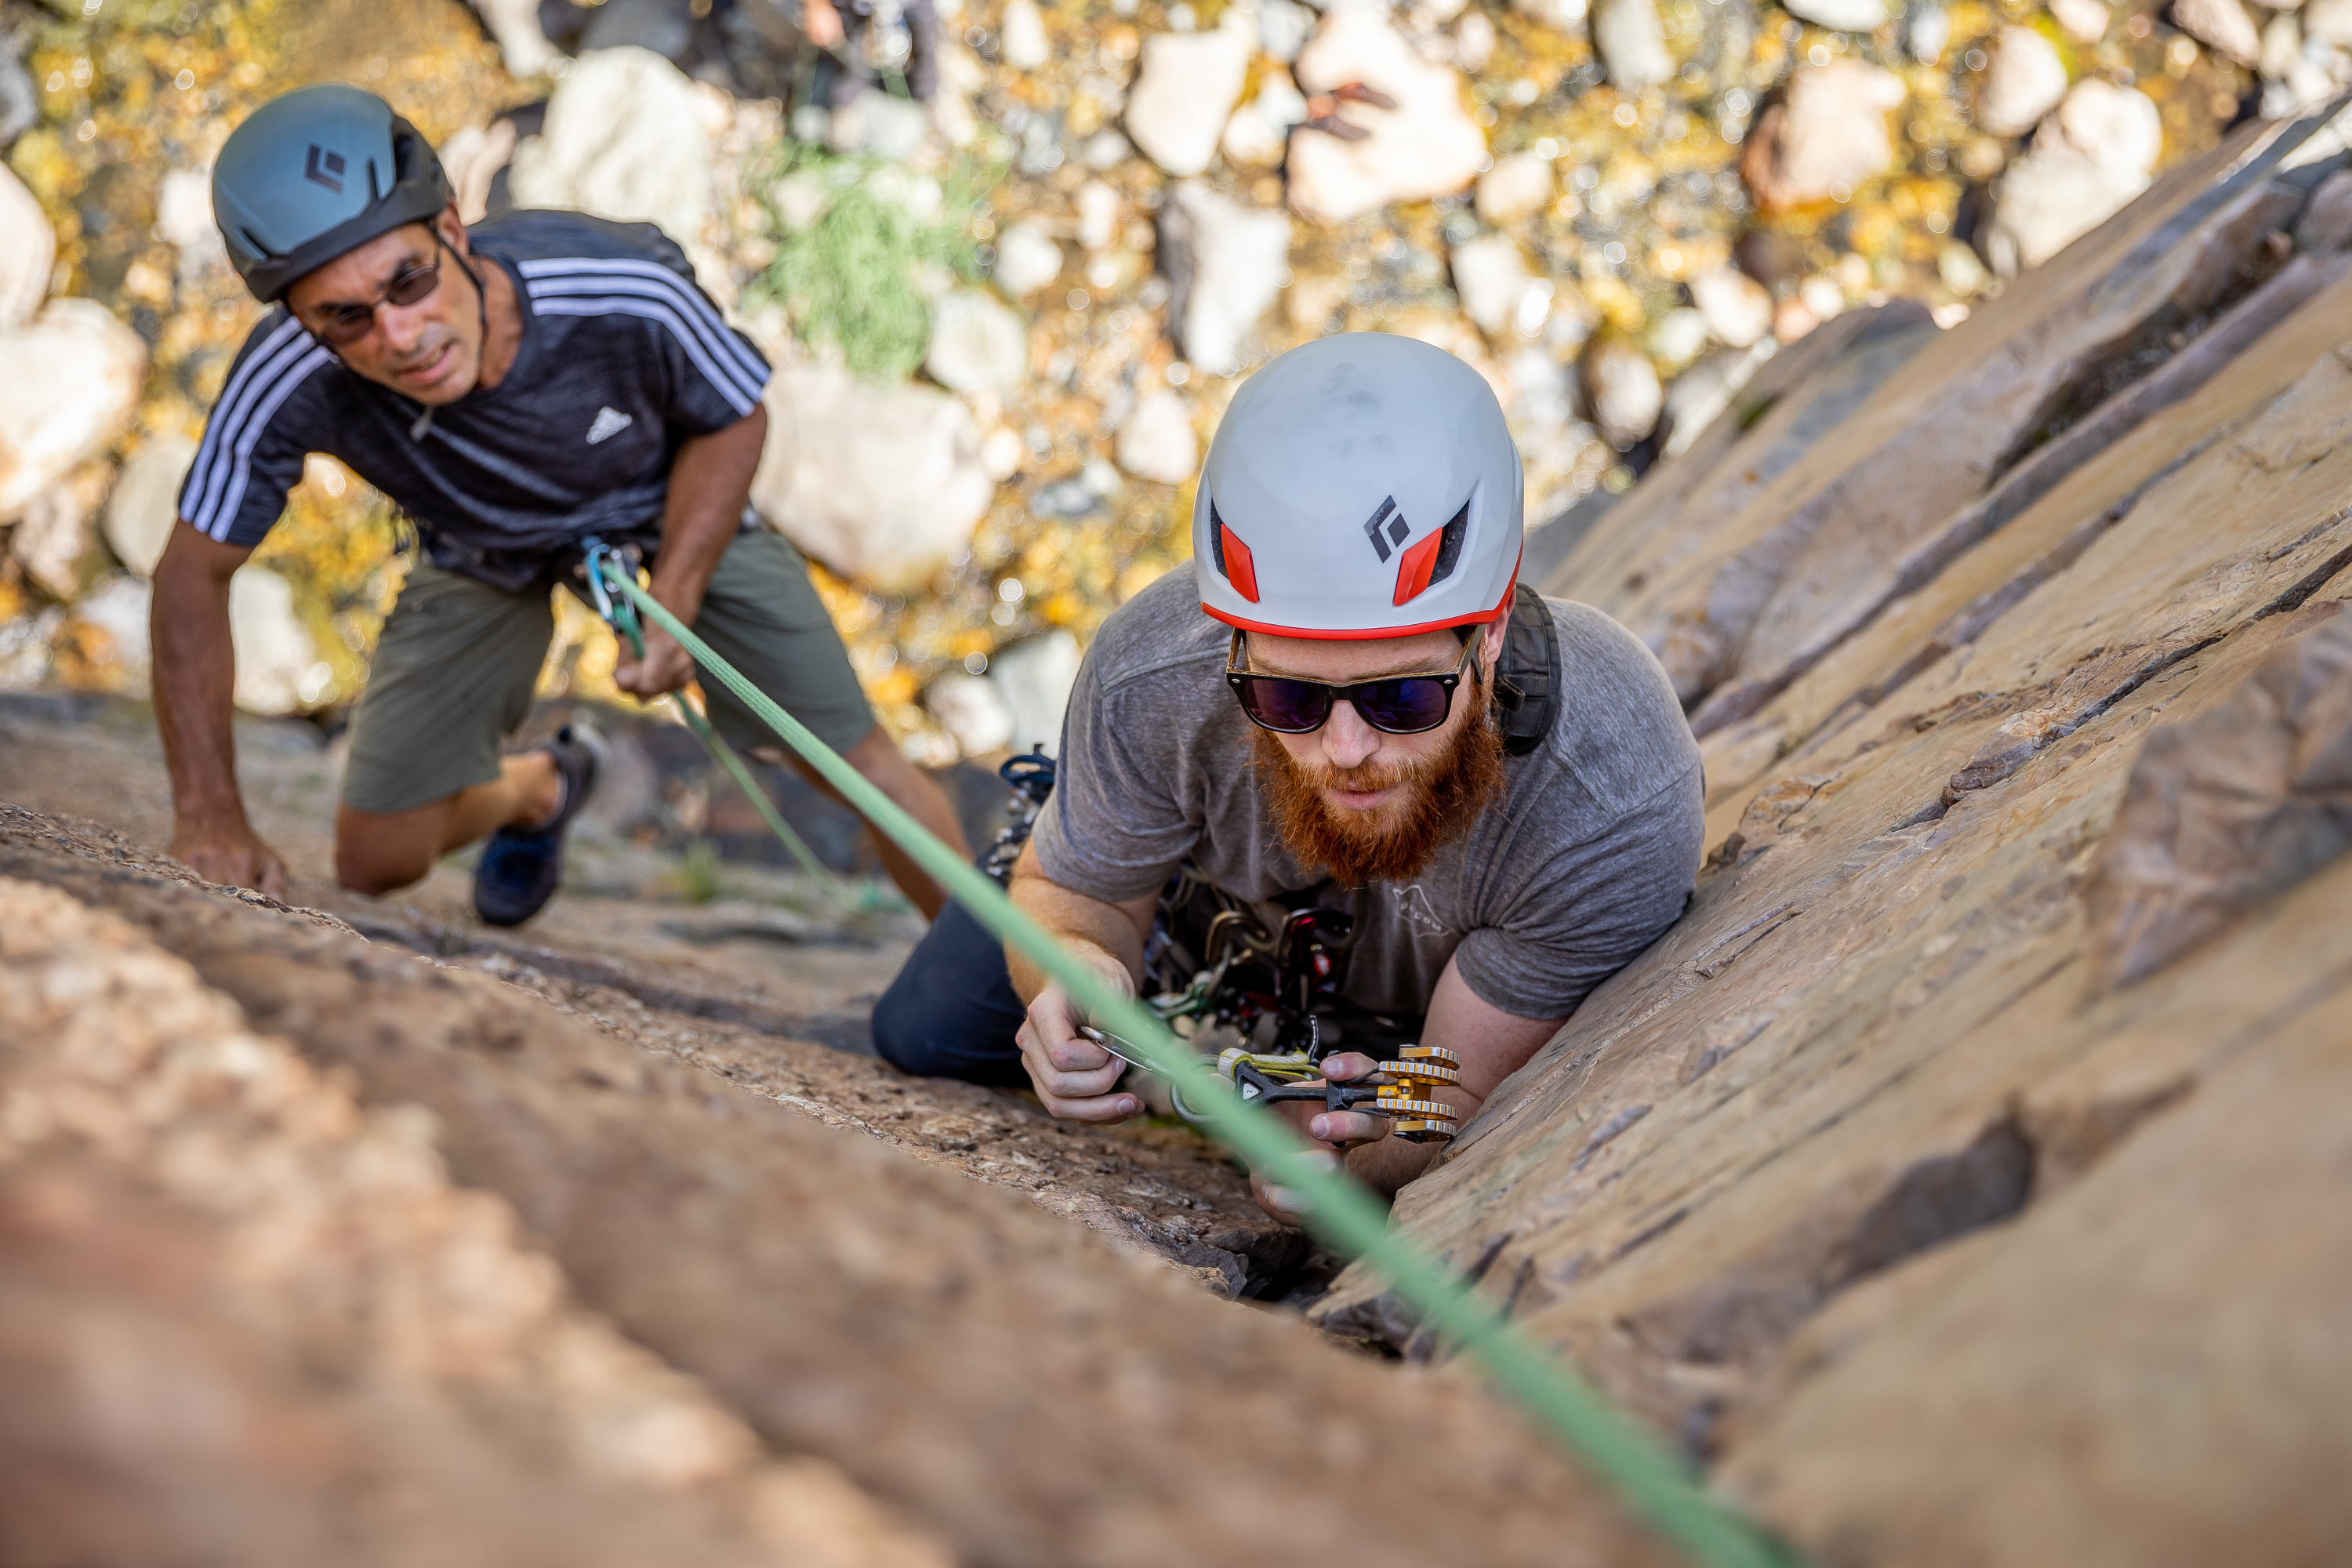 Quino Gonzalez, a guide and instructor for Utah Mountain Adventures, supervises while Daman Bareiss places protection during a trad climbing clinic in Big Cottonwood Canyon.